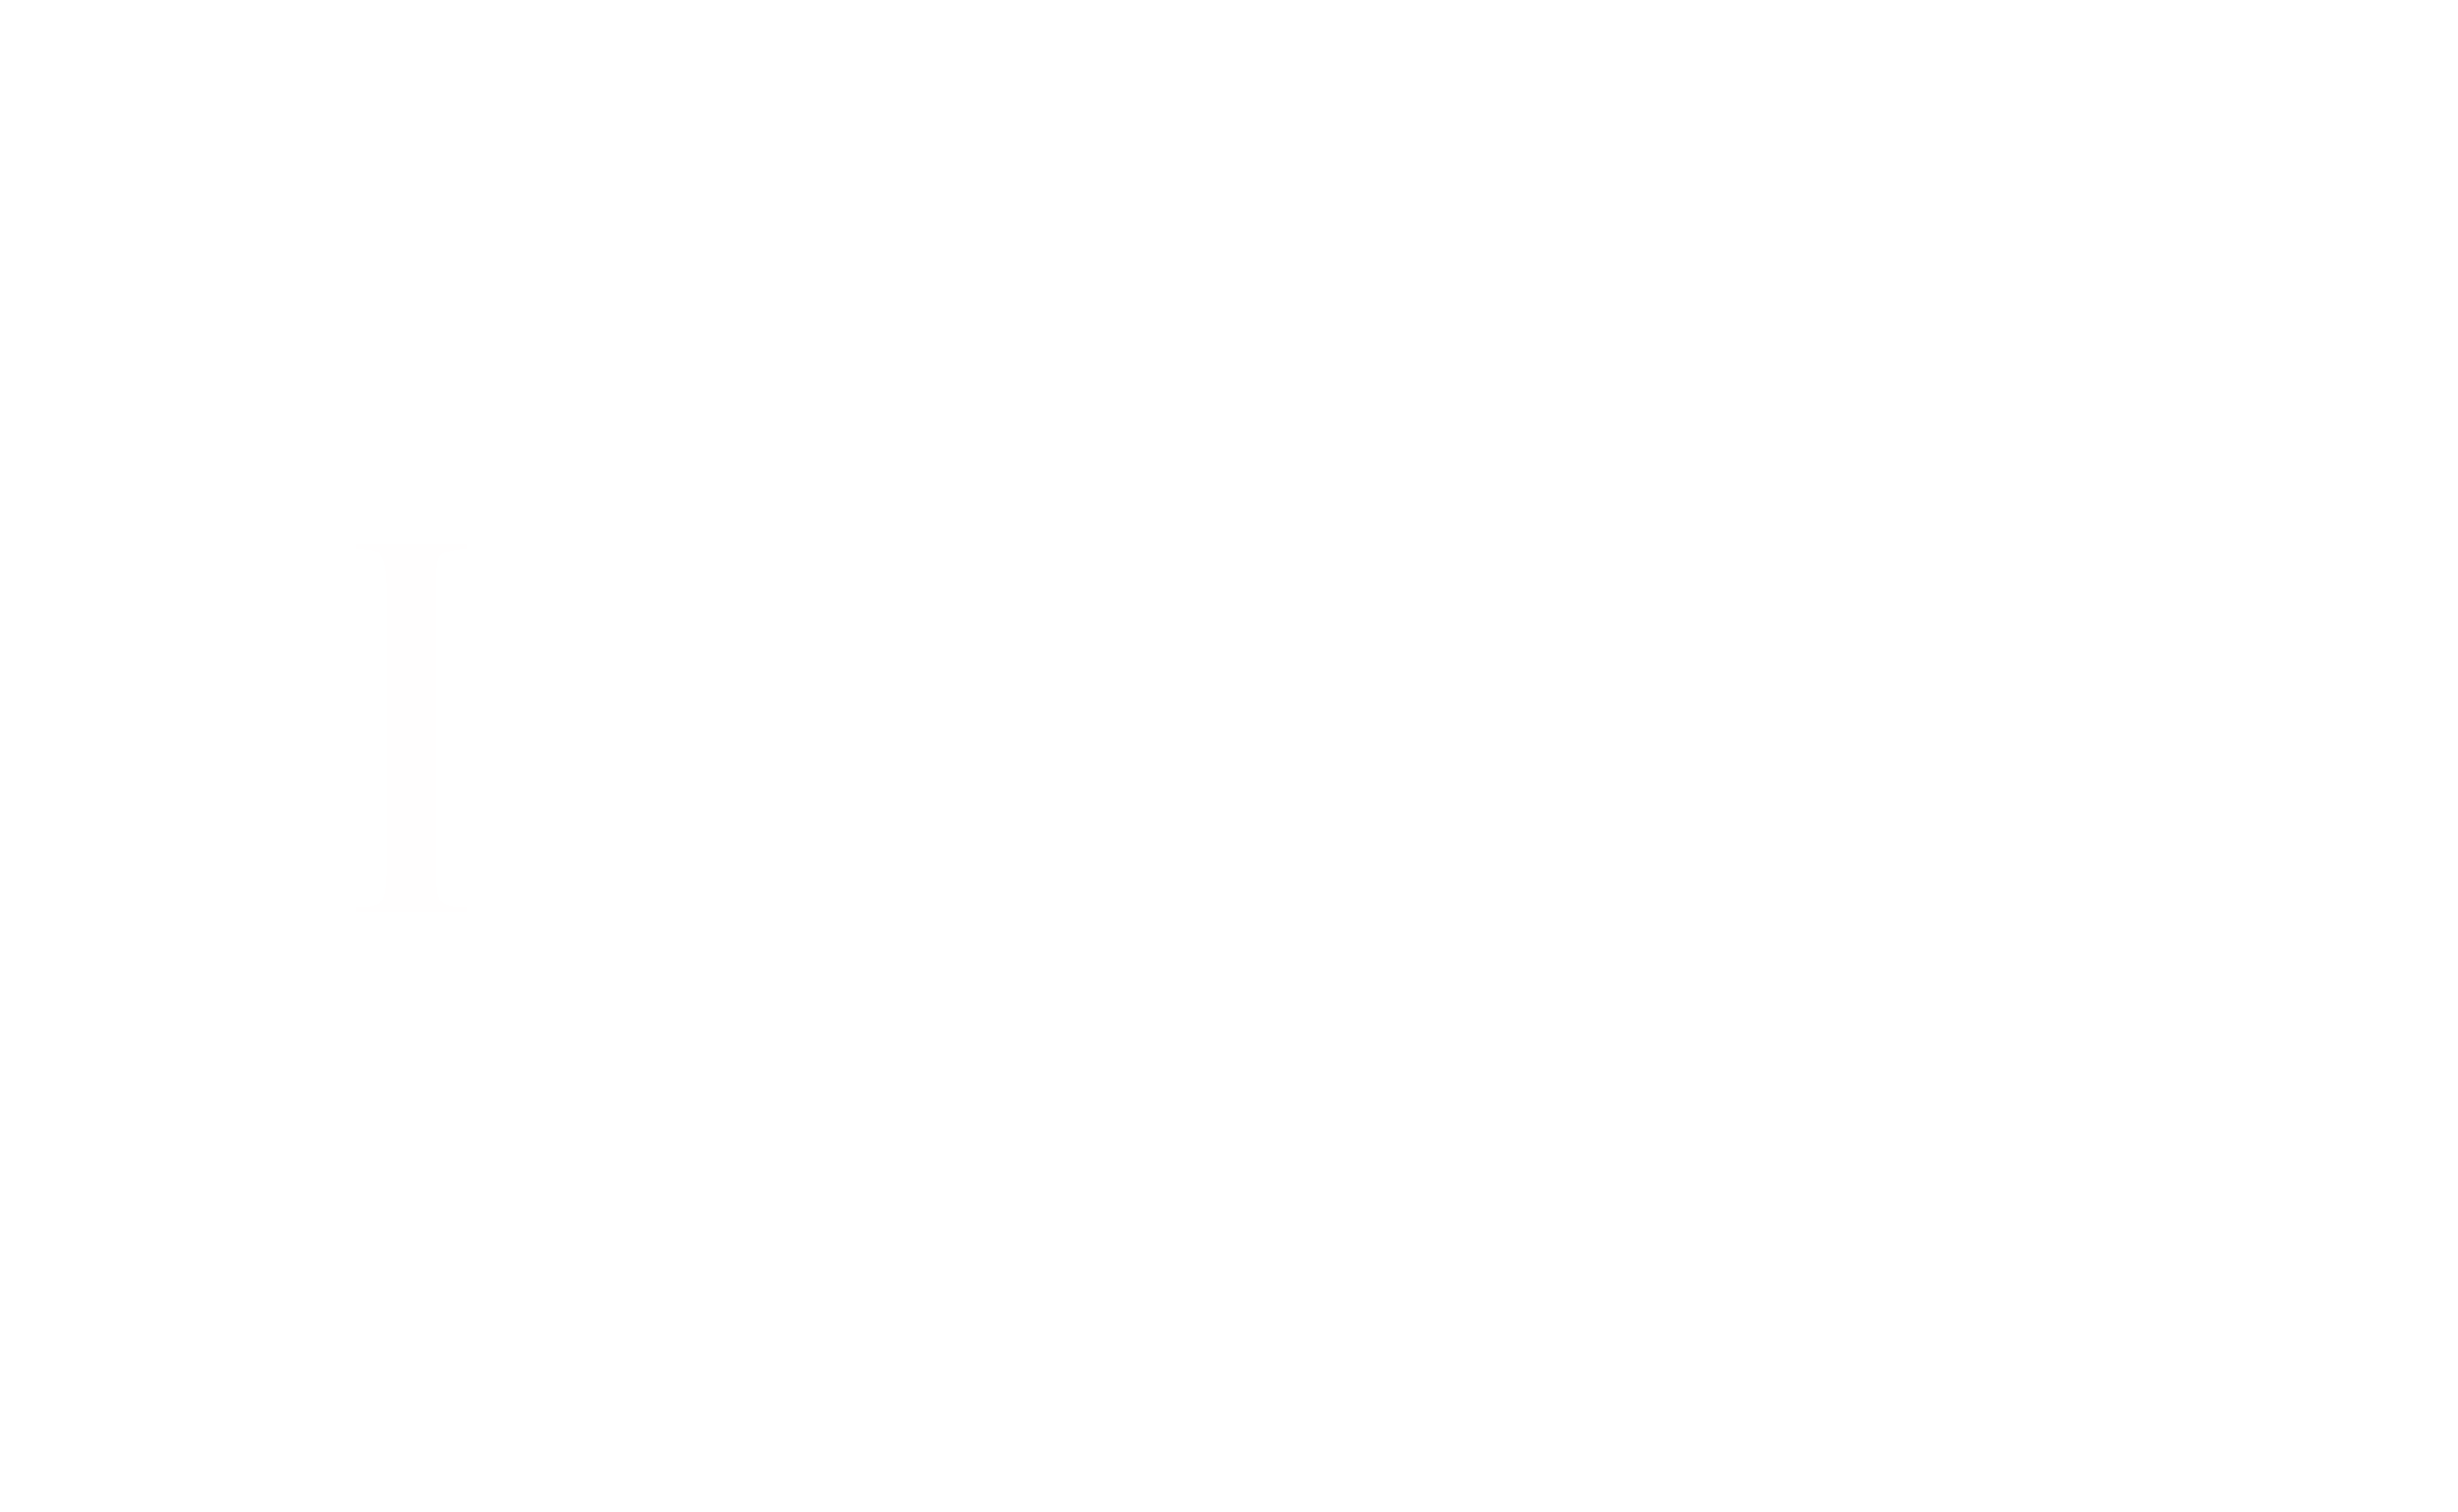 Ideal Painting